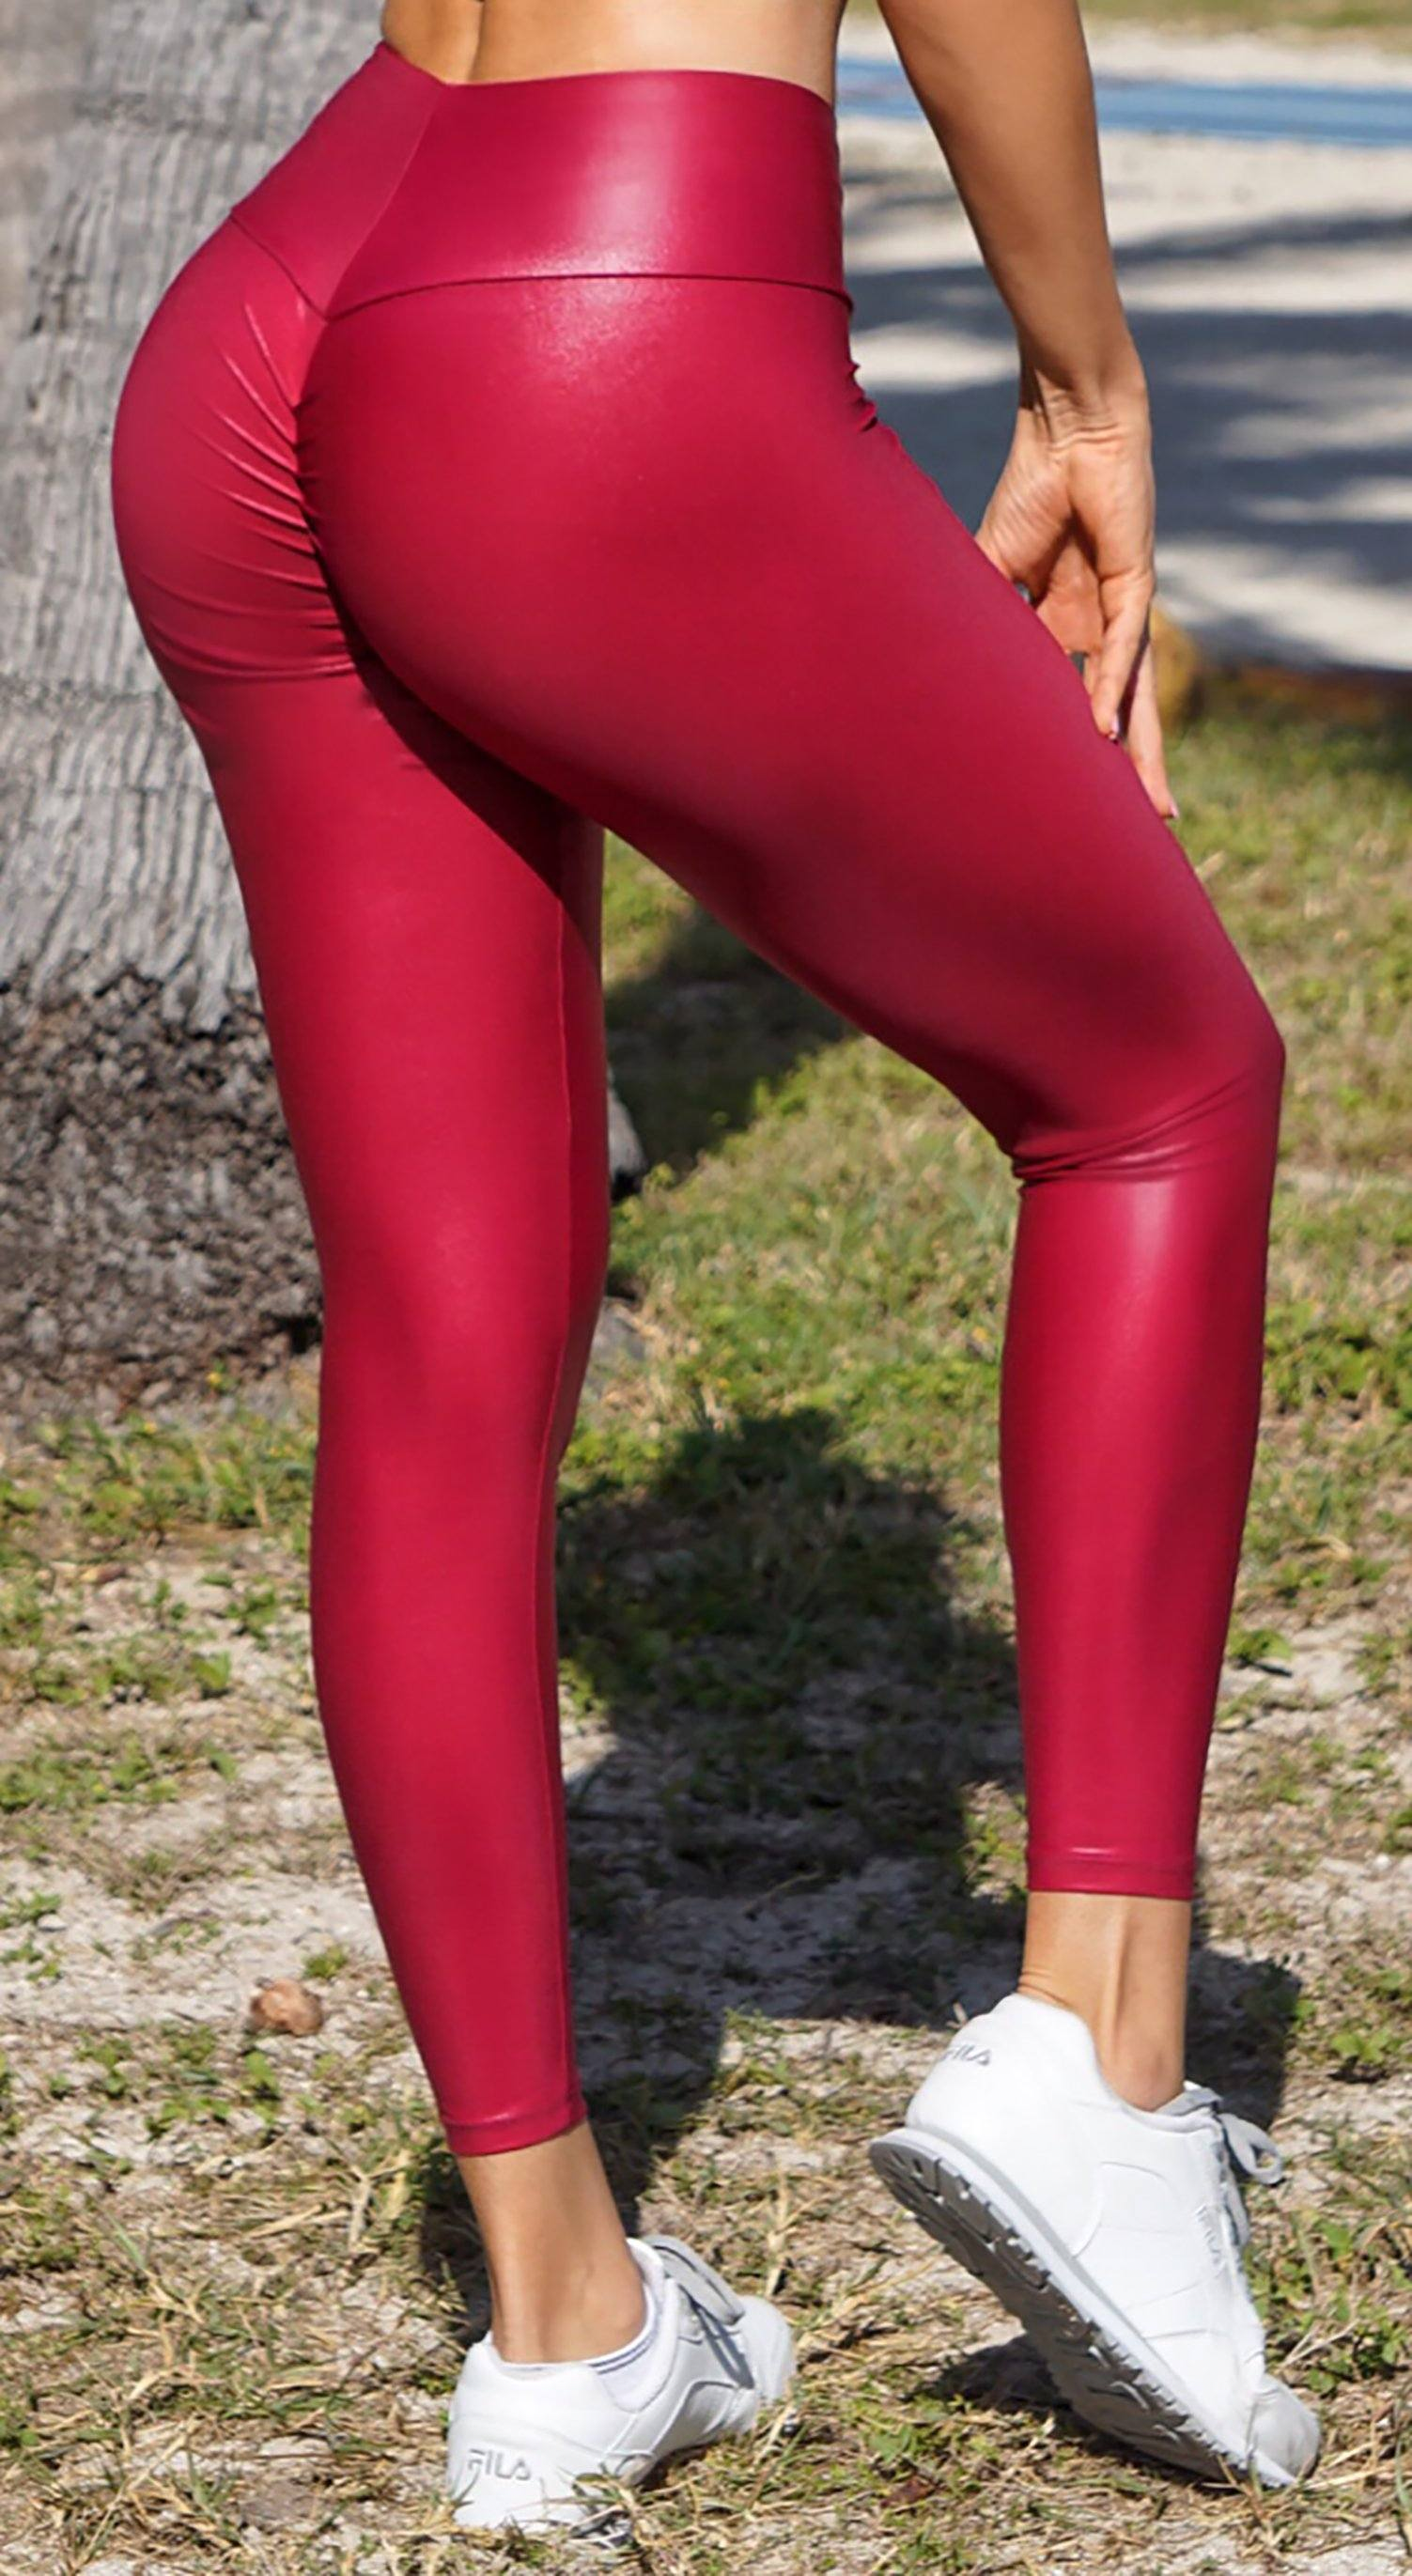 Brazilian Workout Legging - Scrunch Booty Faux Leather Red